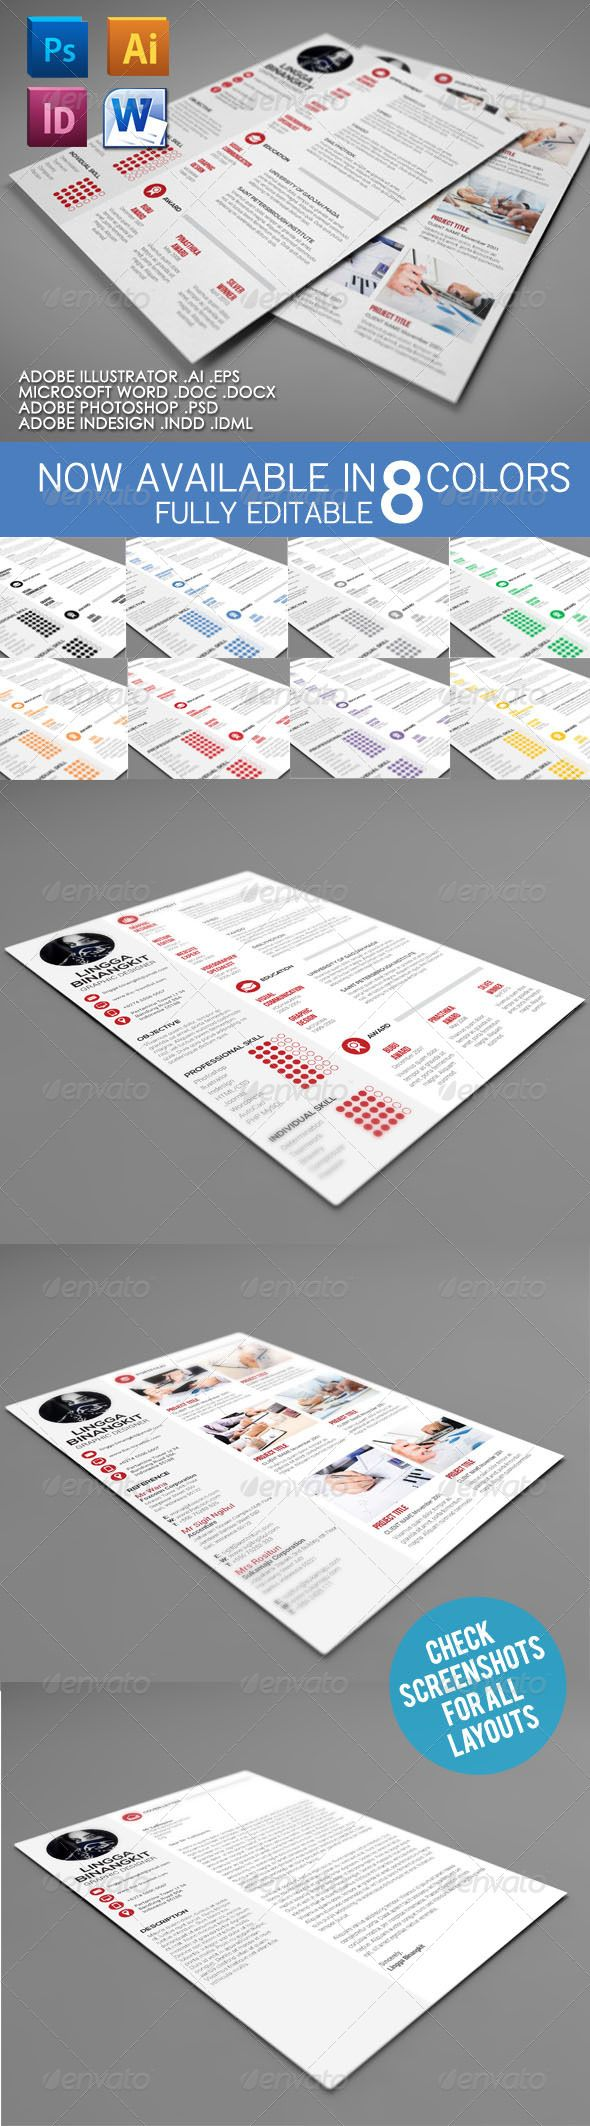 Sewon Clean Resume Template Volume 4 | Pinterest | Template, Text ...